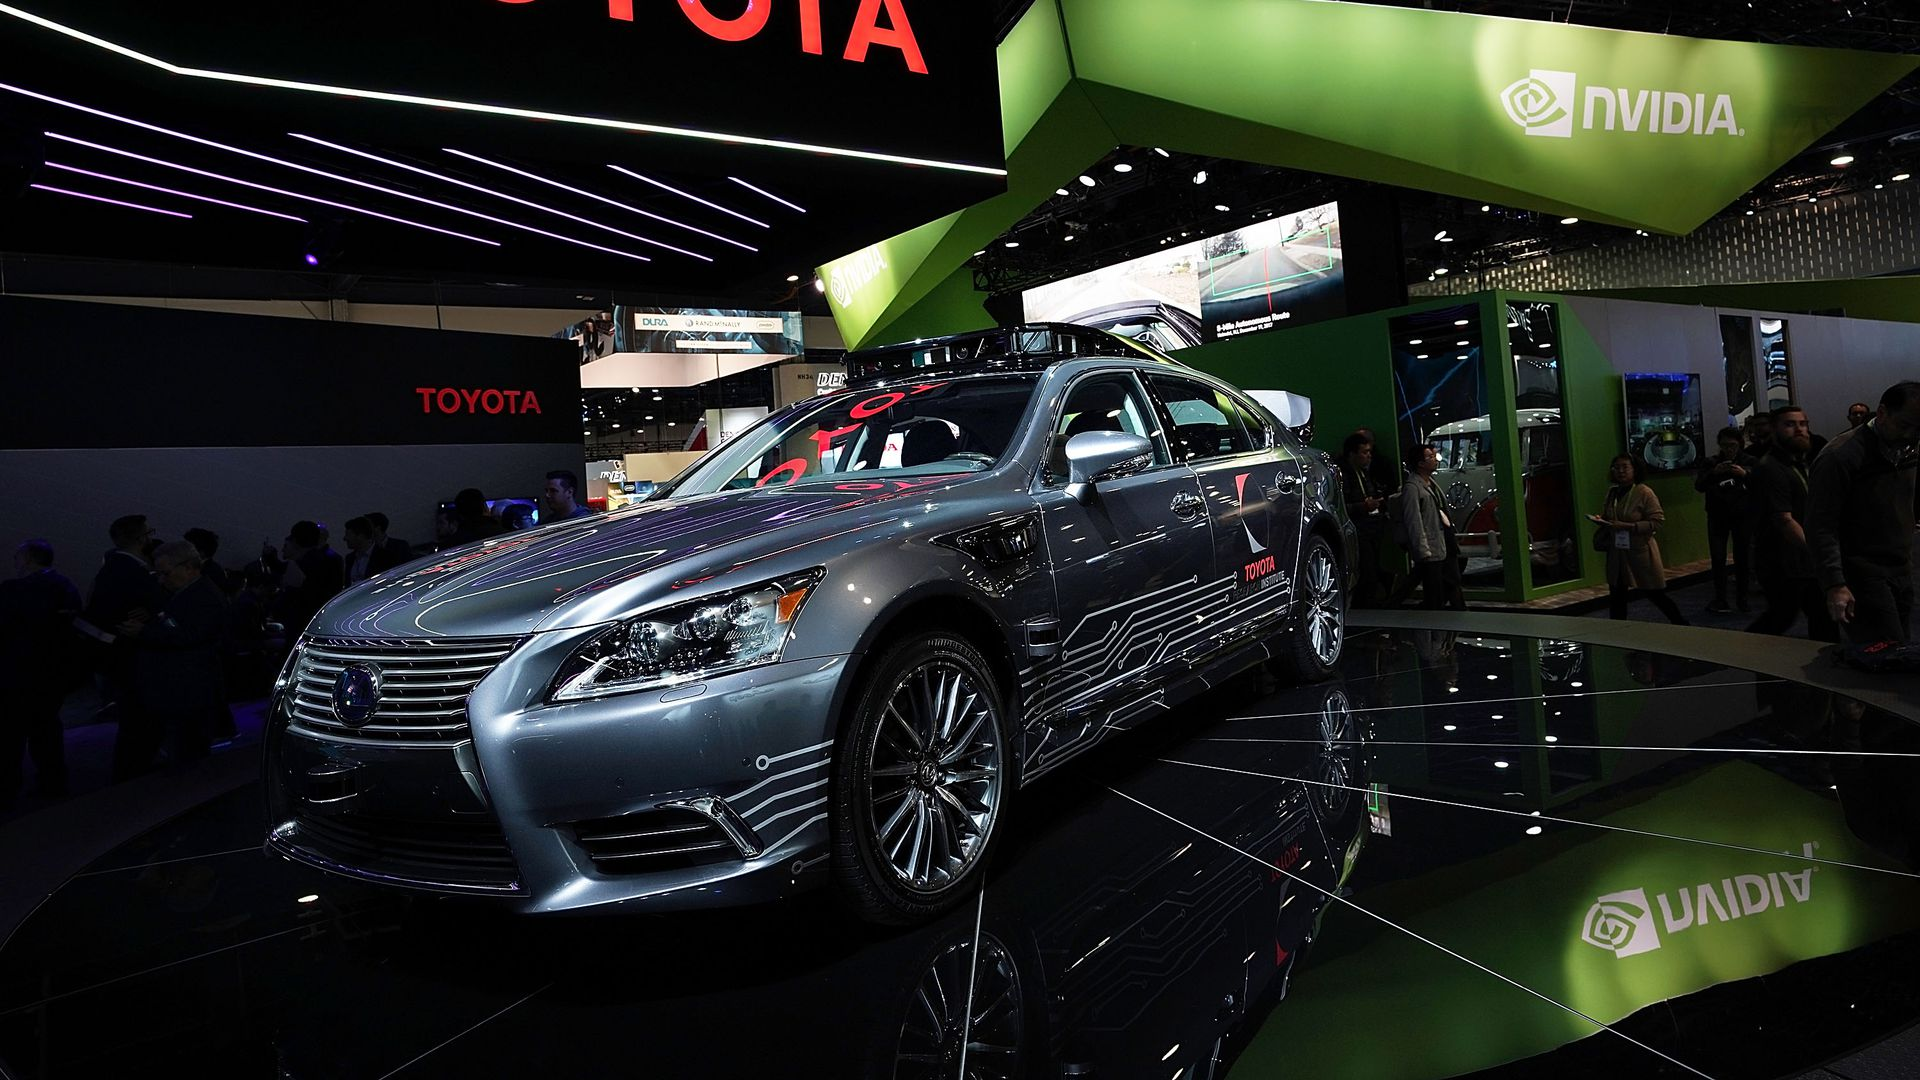 An autonomous vehicle concept from Toyota, on display at CES 2018.